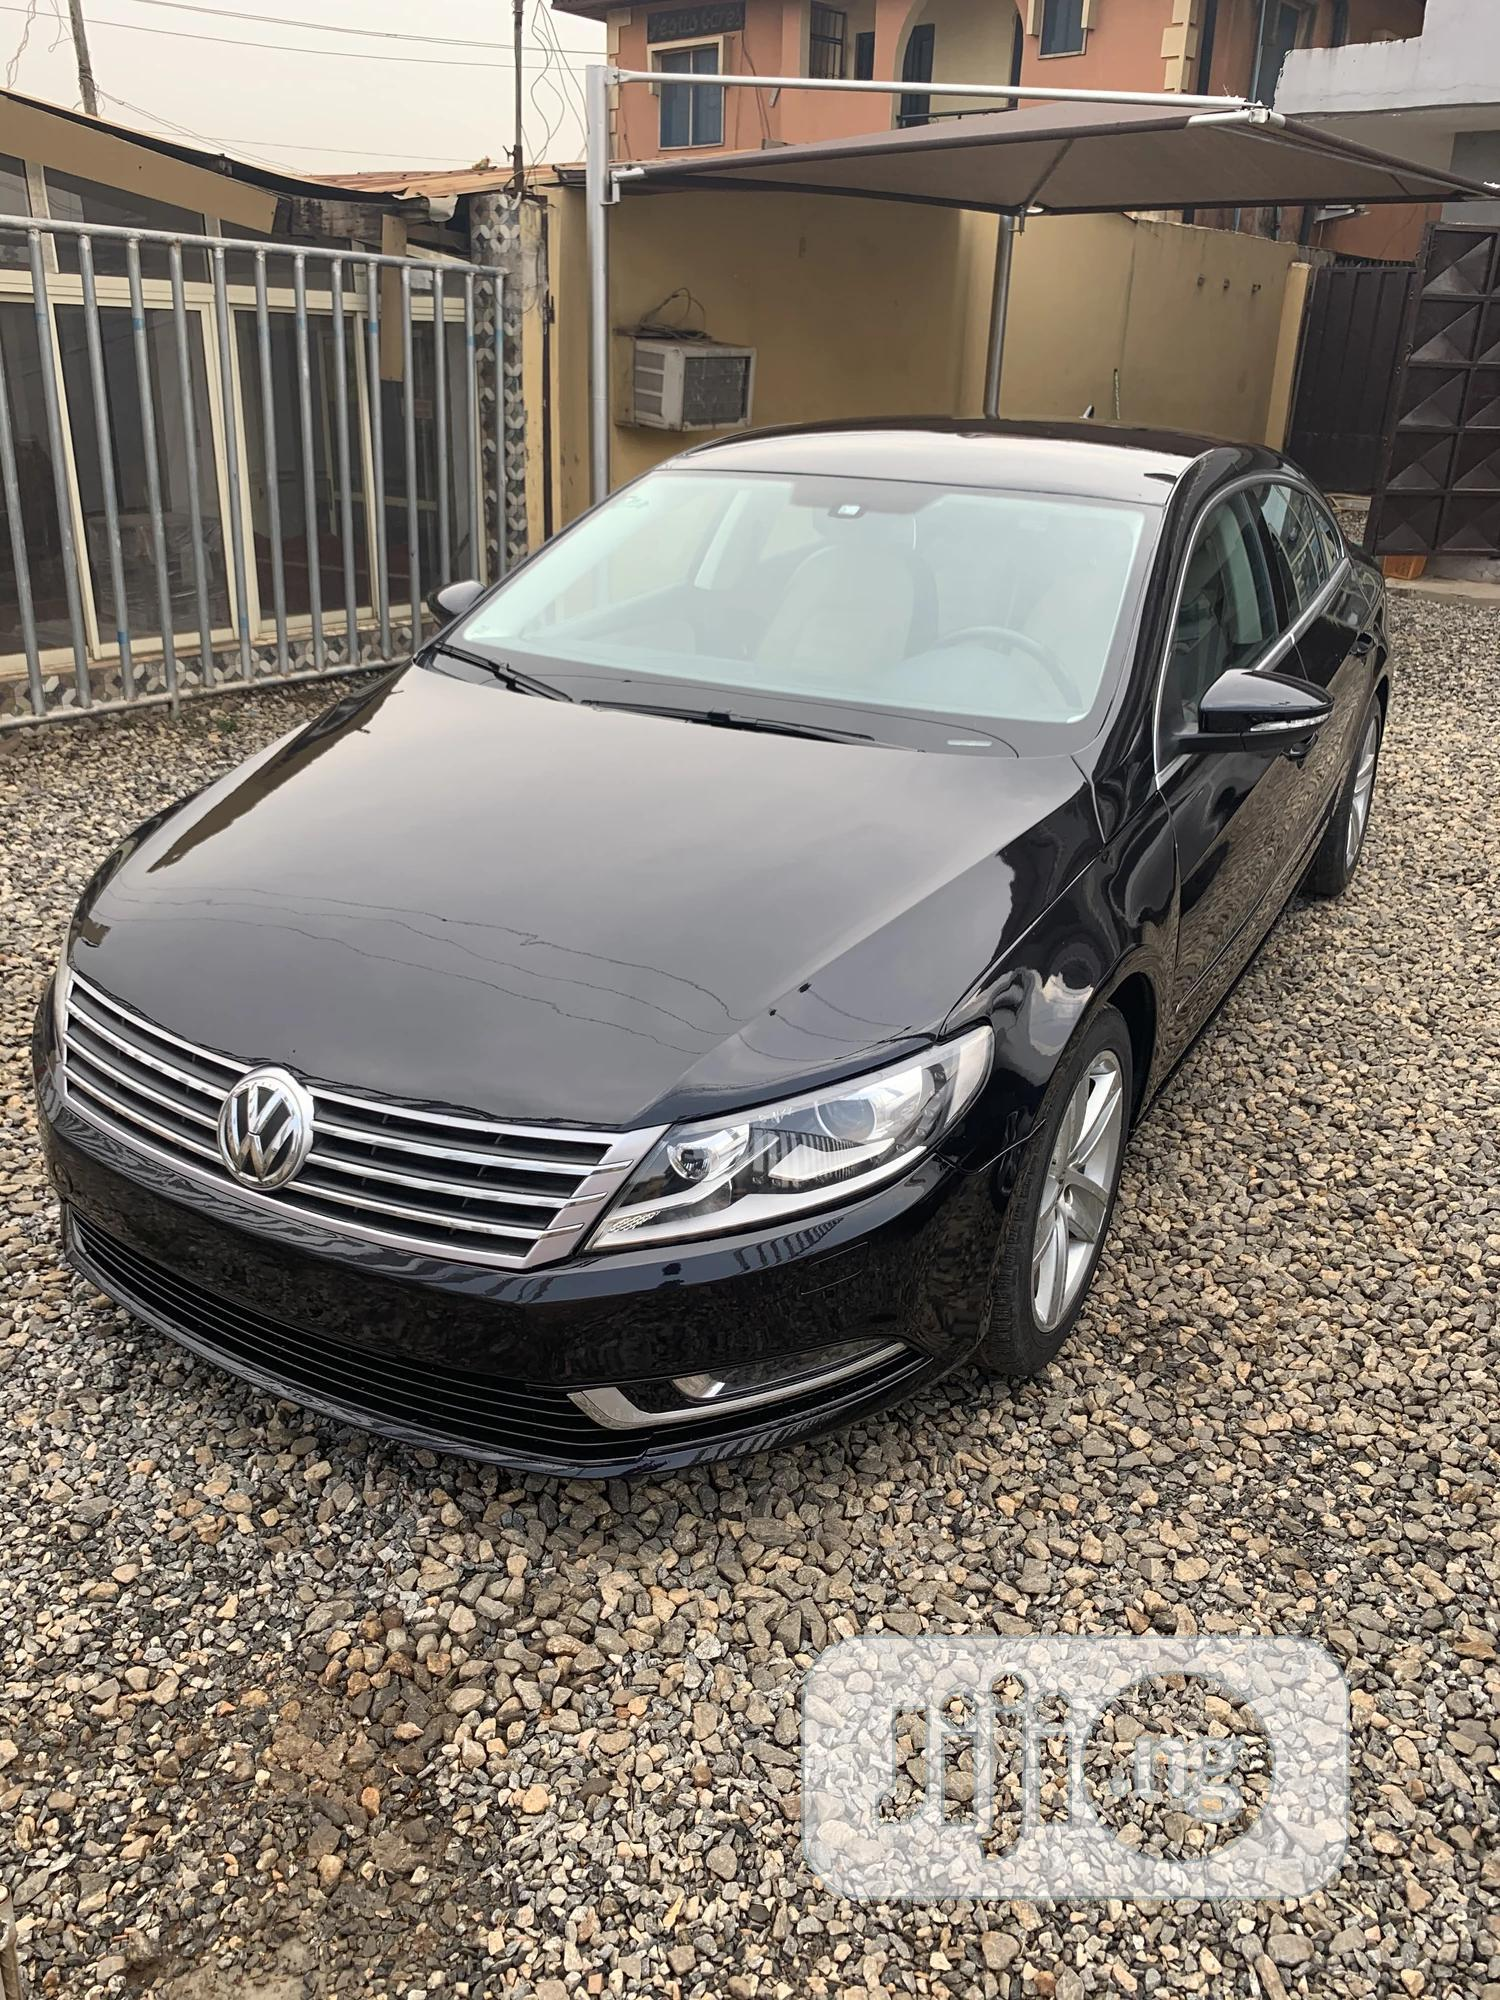 Volkswagen Passat 2013 S with Appearance Package Black